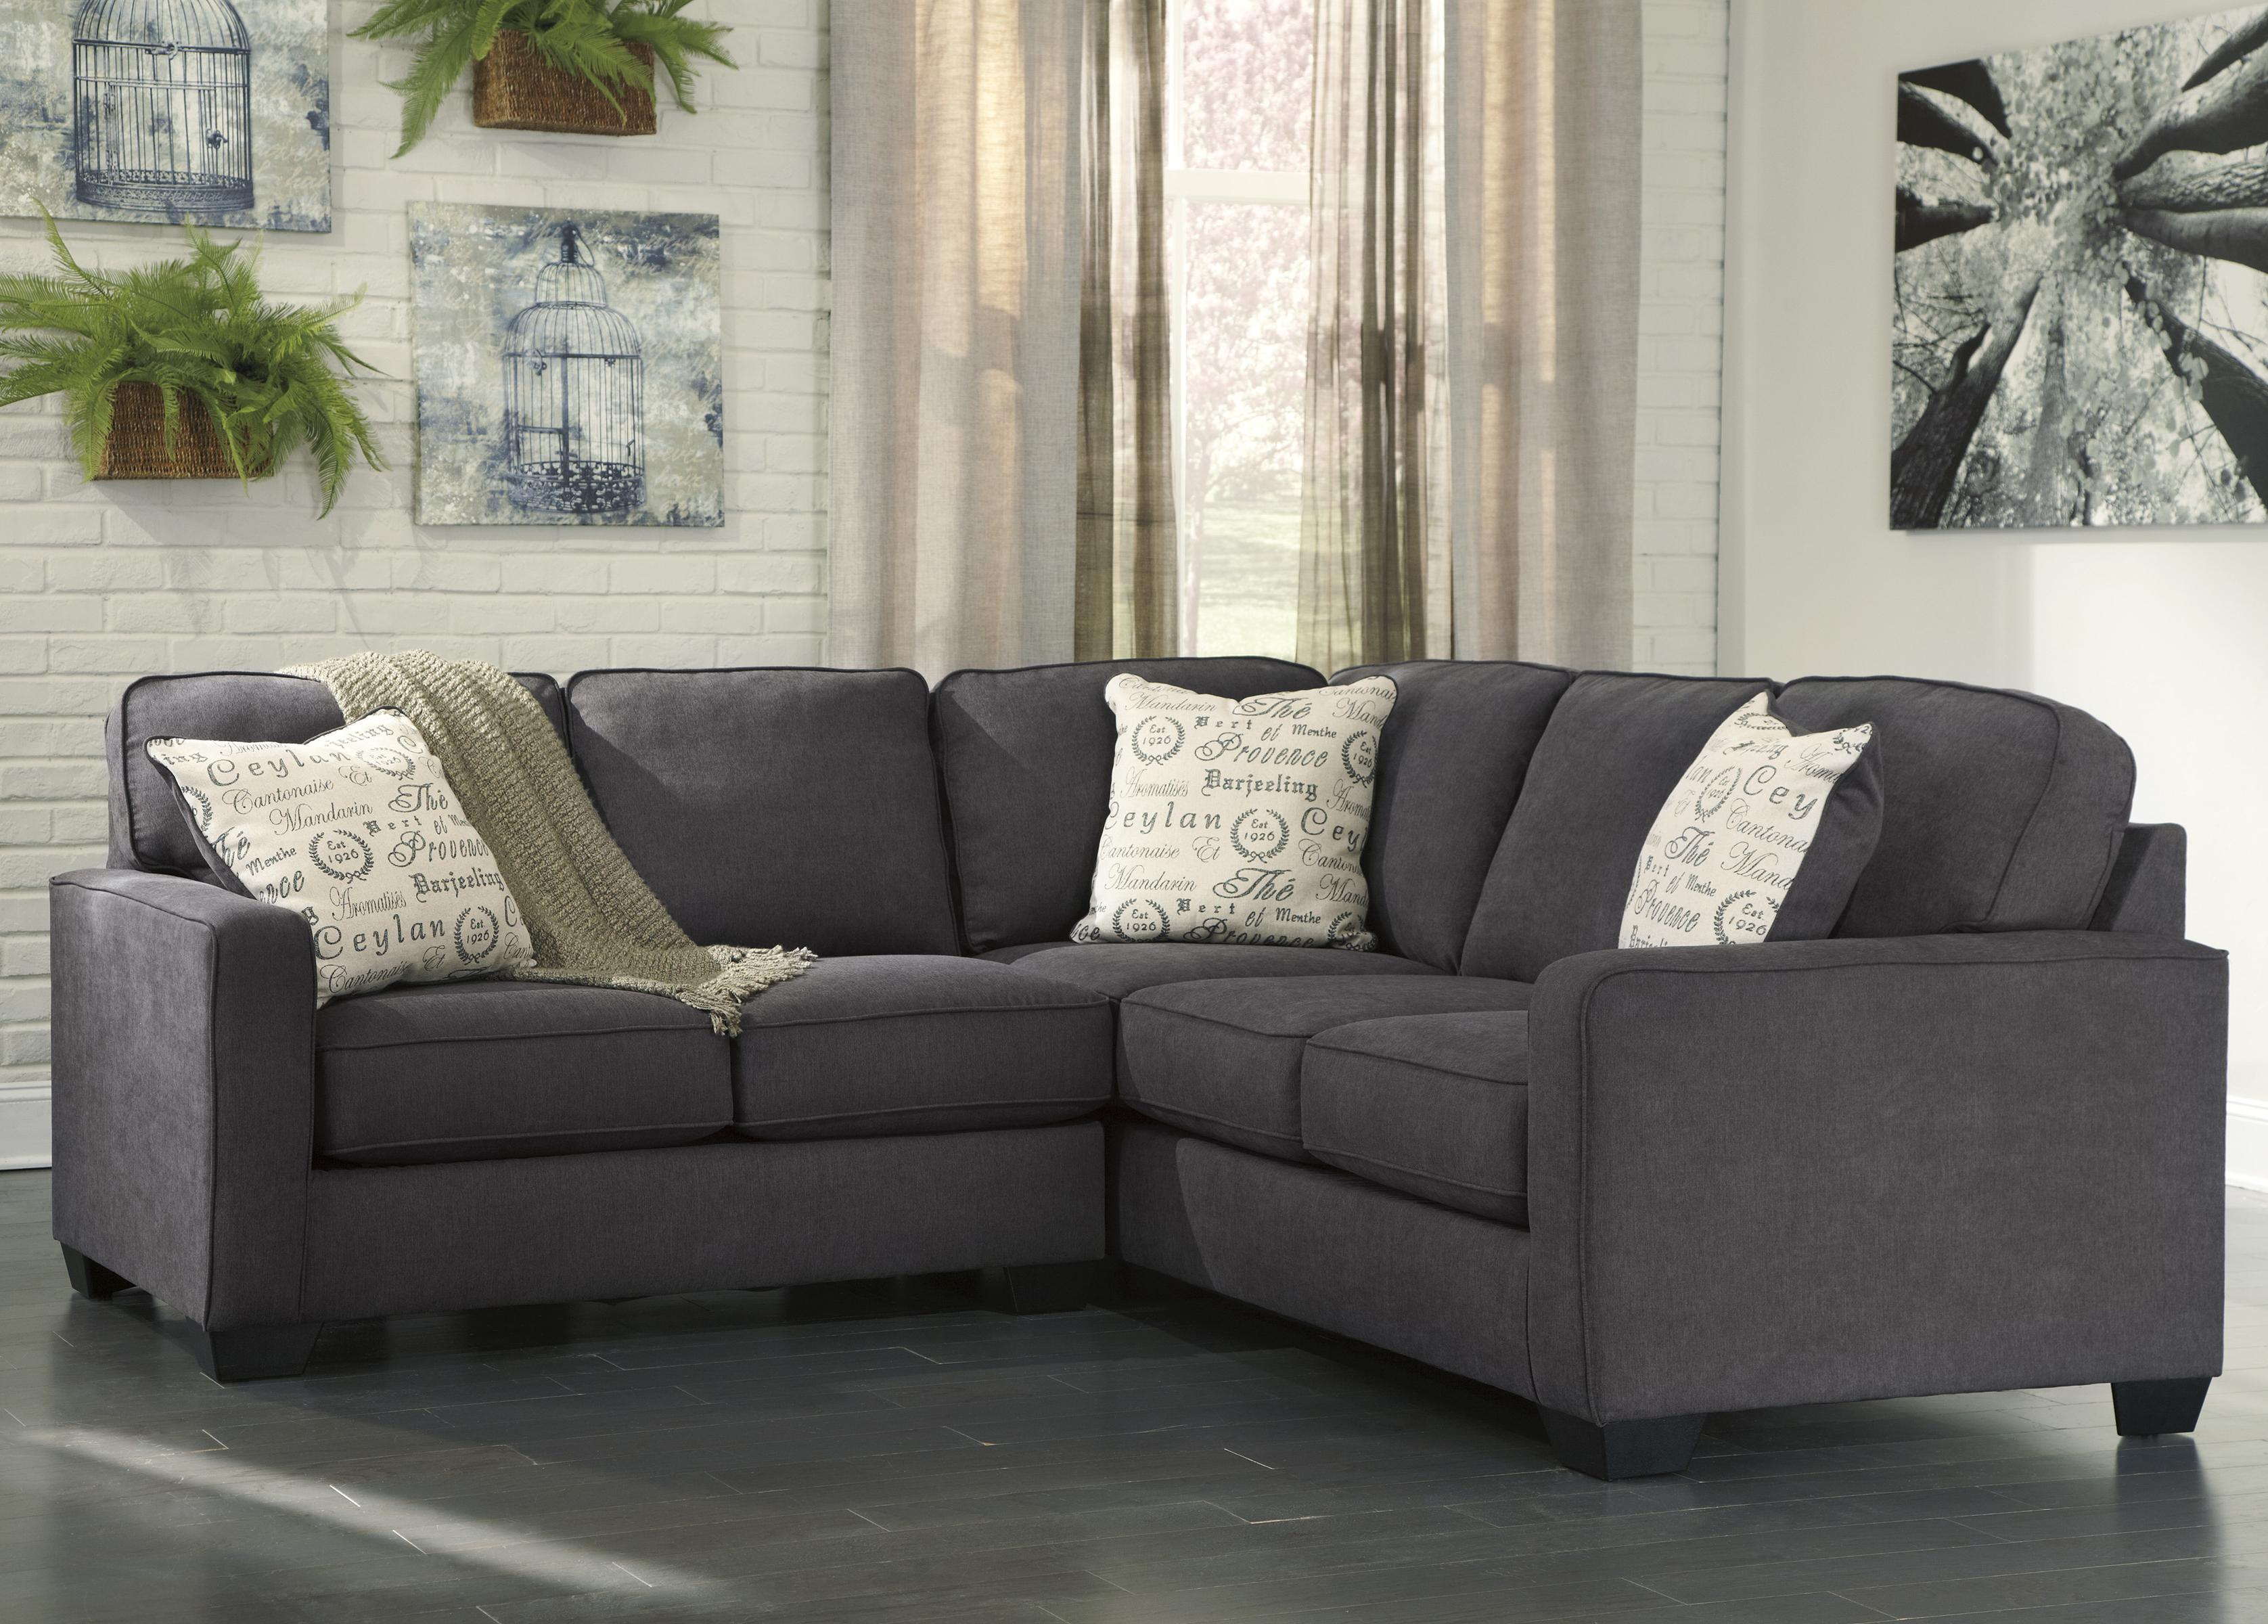 Alenya - Charcoal 2-Piece Sectional with Left Loveseat by Signature Design by Ashley at Standard Furniture